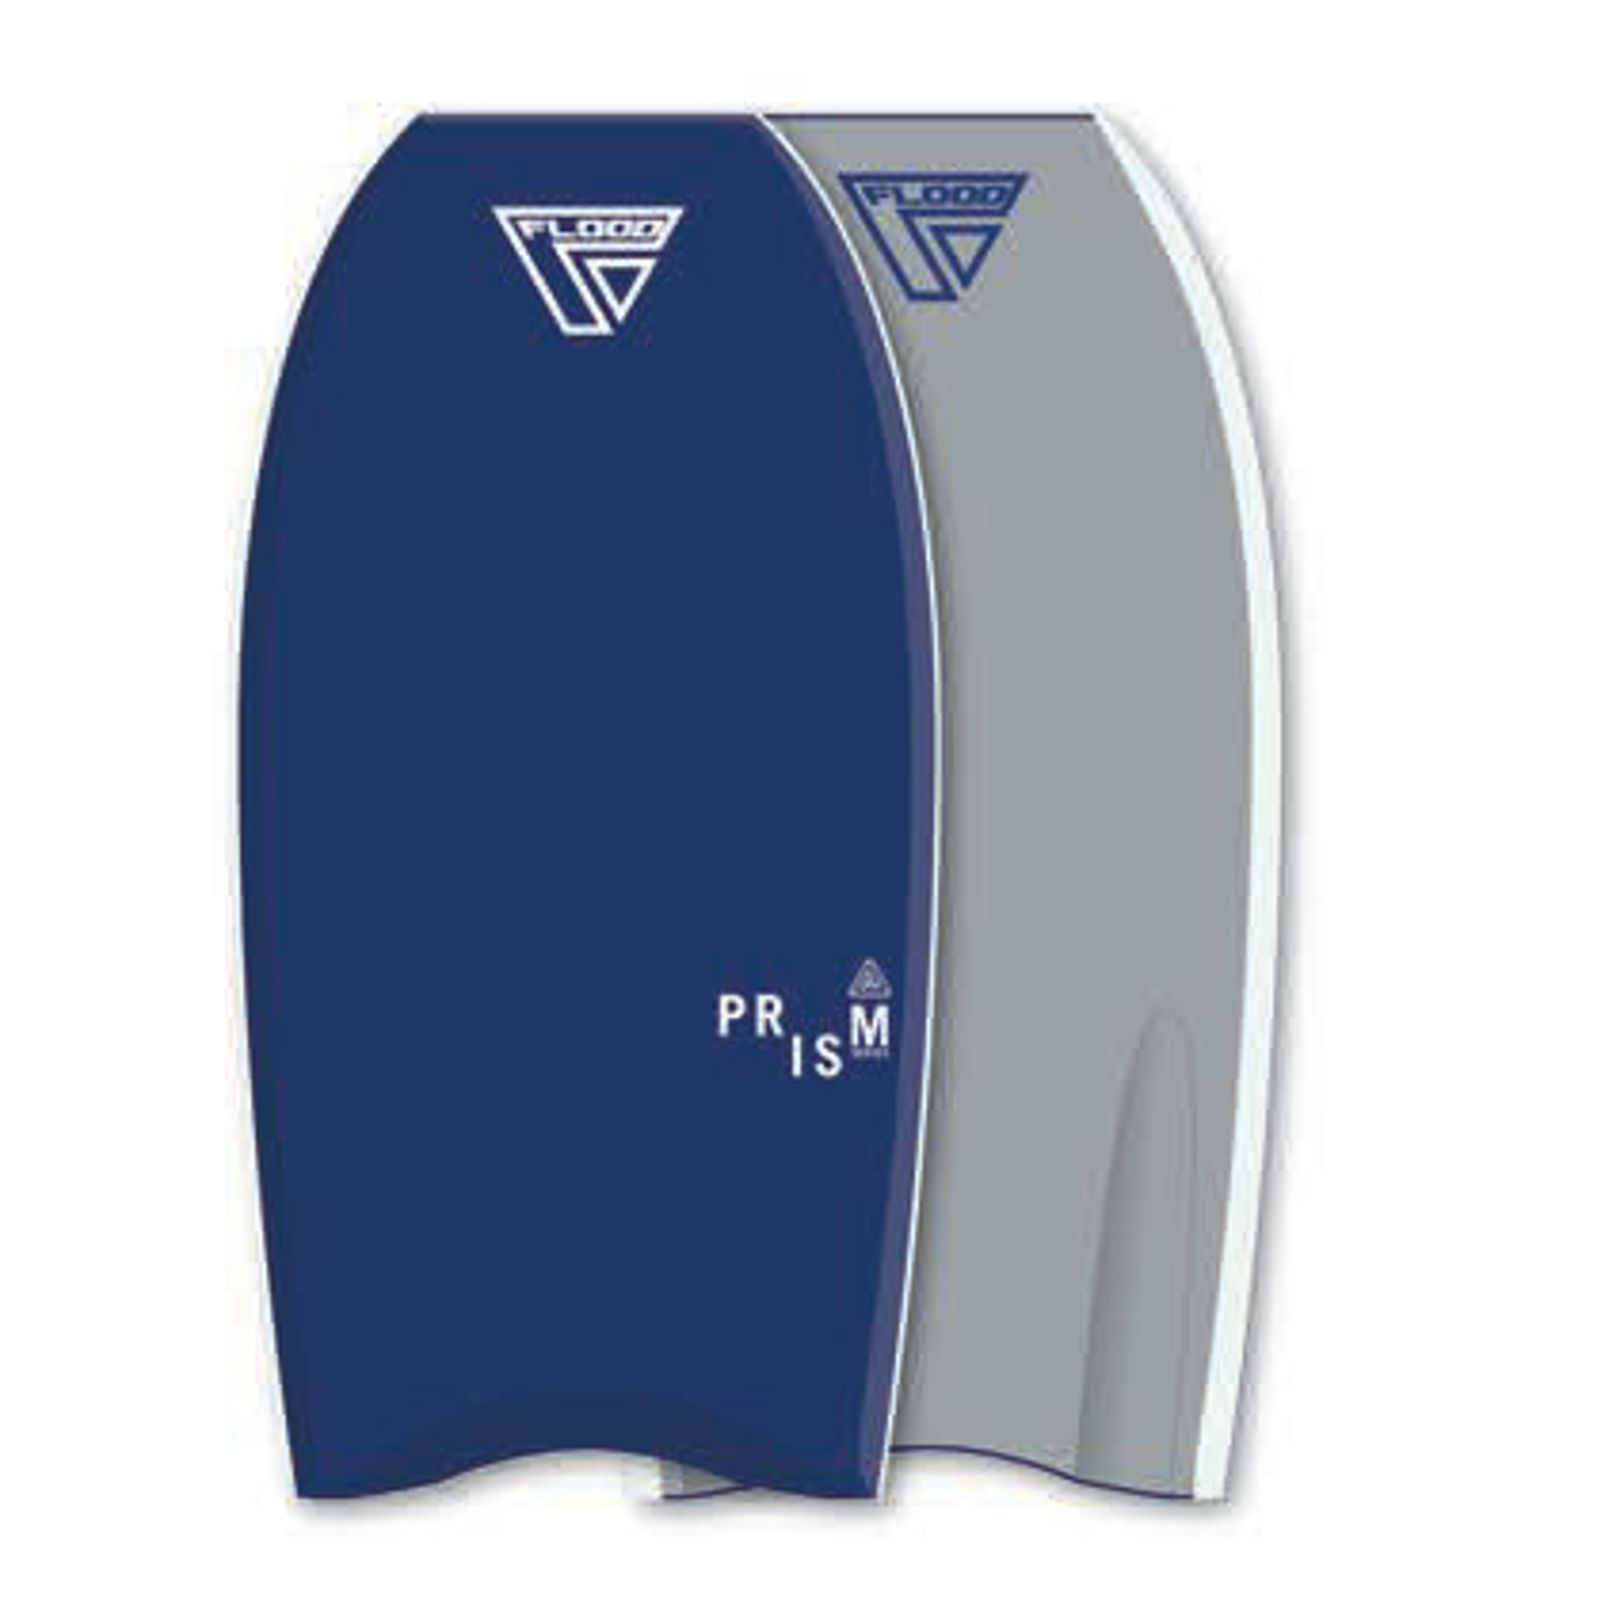 FLOOD Bodyboard Prism Stringer PE 41 Navy